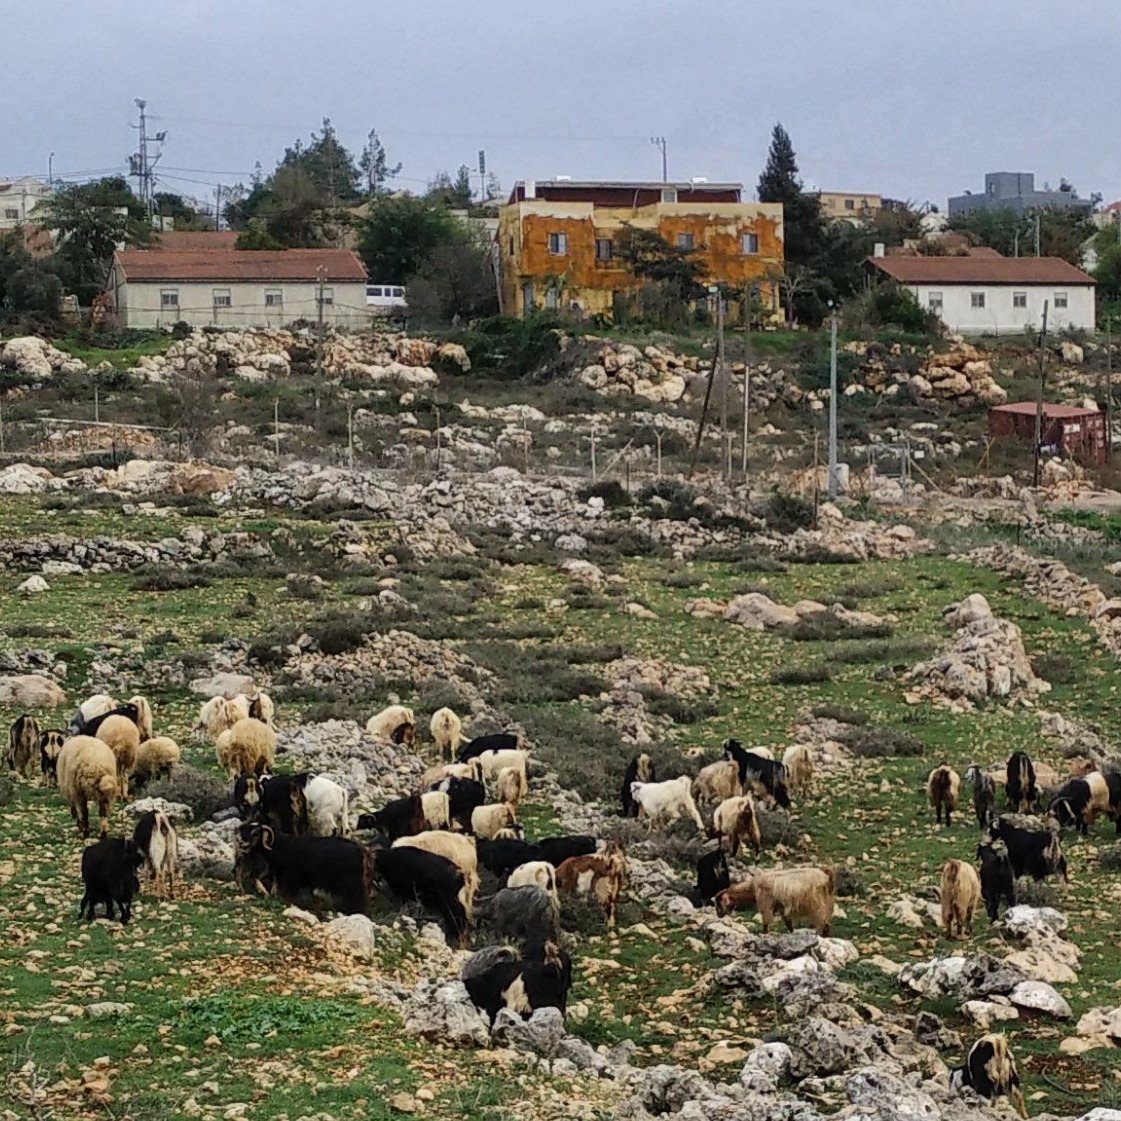 The Jewish Shepherd's flock